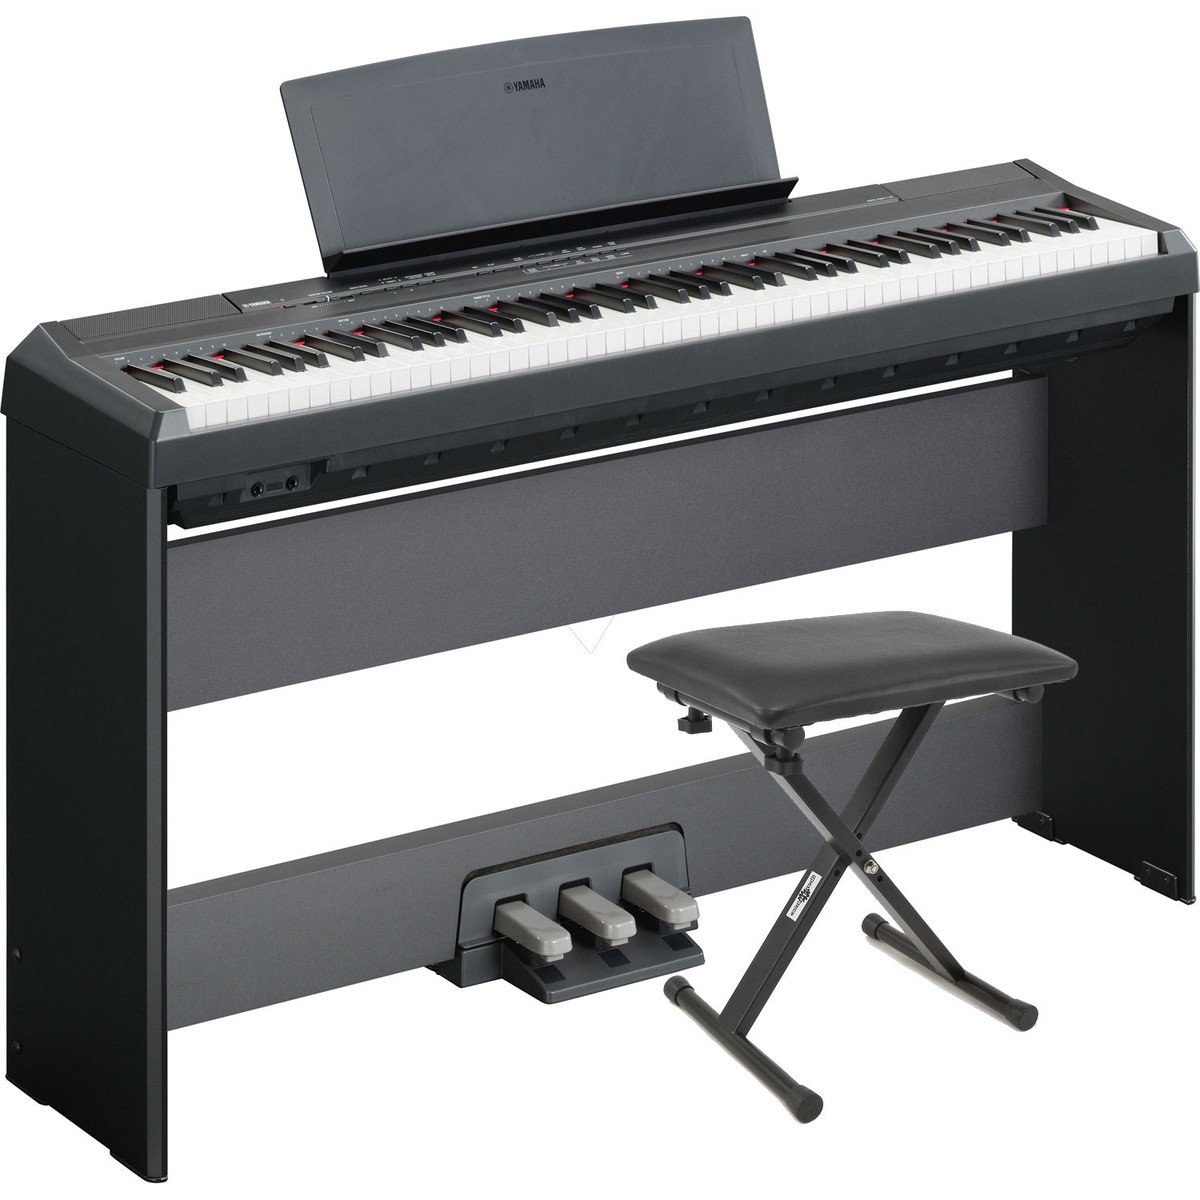 Yamaha P105 Digital Piano, Black with Stand, Pedal Board and Bench